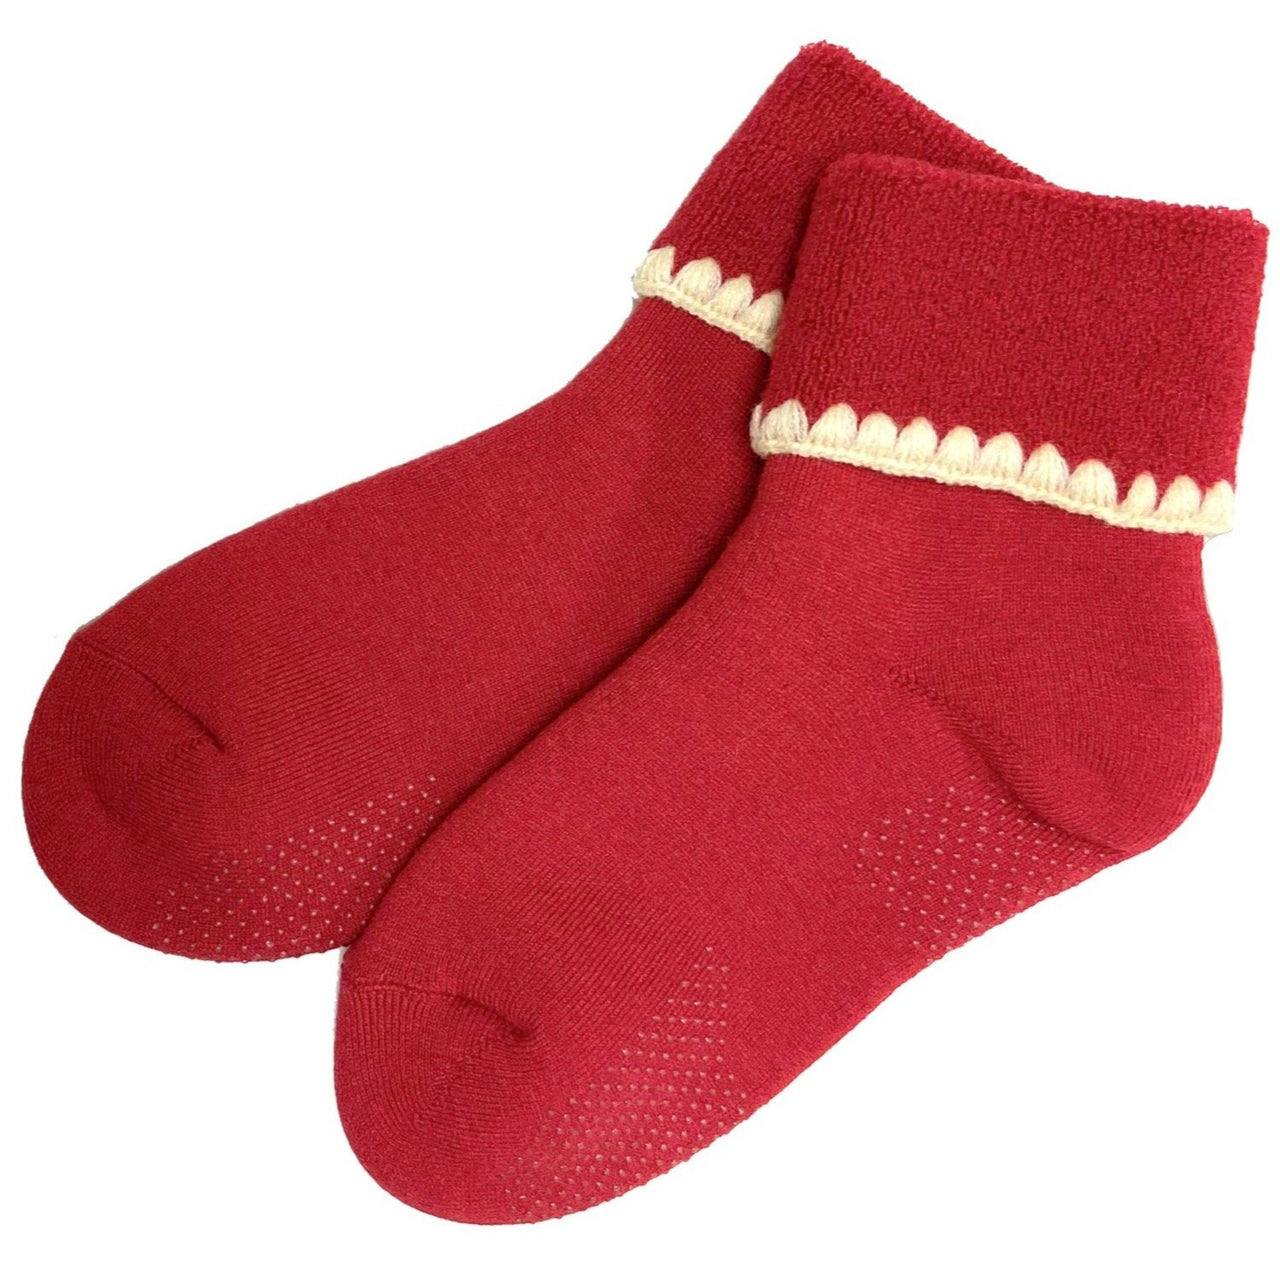 CHERRYSTONE® Slipper Socks | Turn Cuff with Grips | Red - CHERRYSTONE